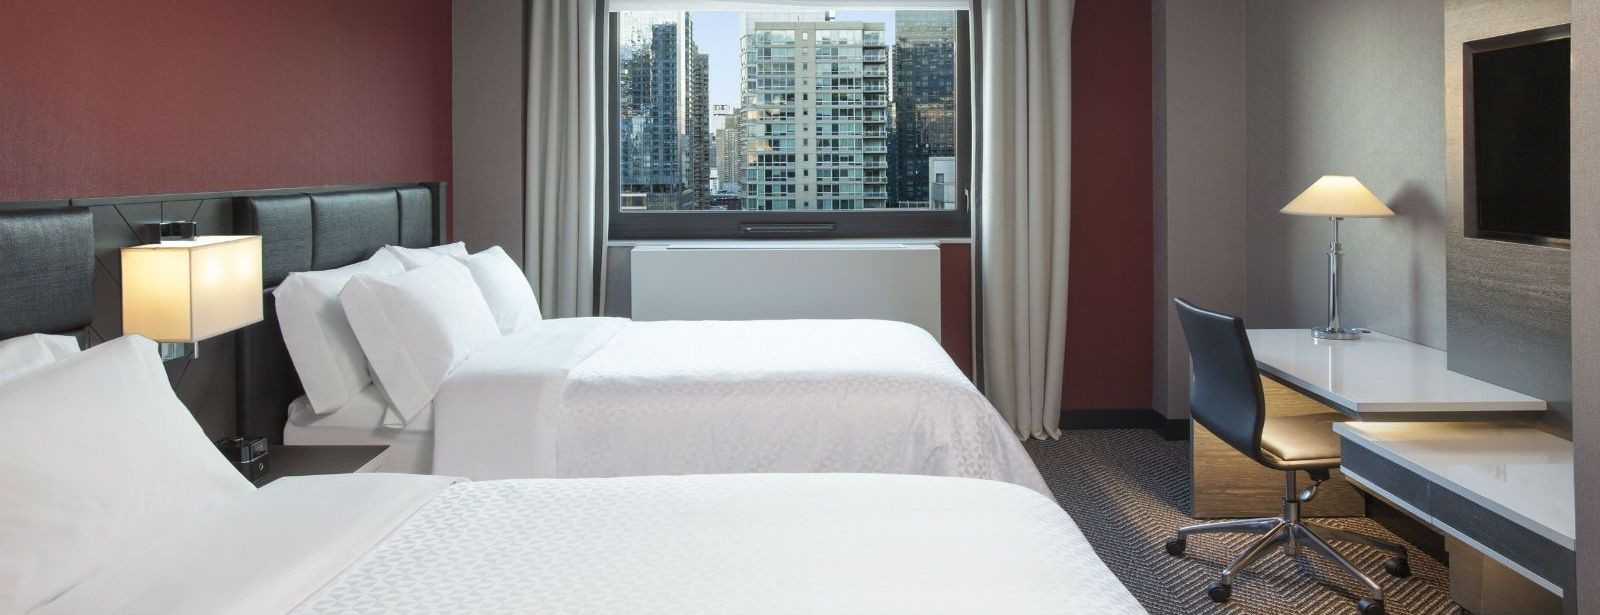 Manhattan Accommodations - Double Double